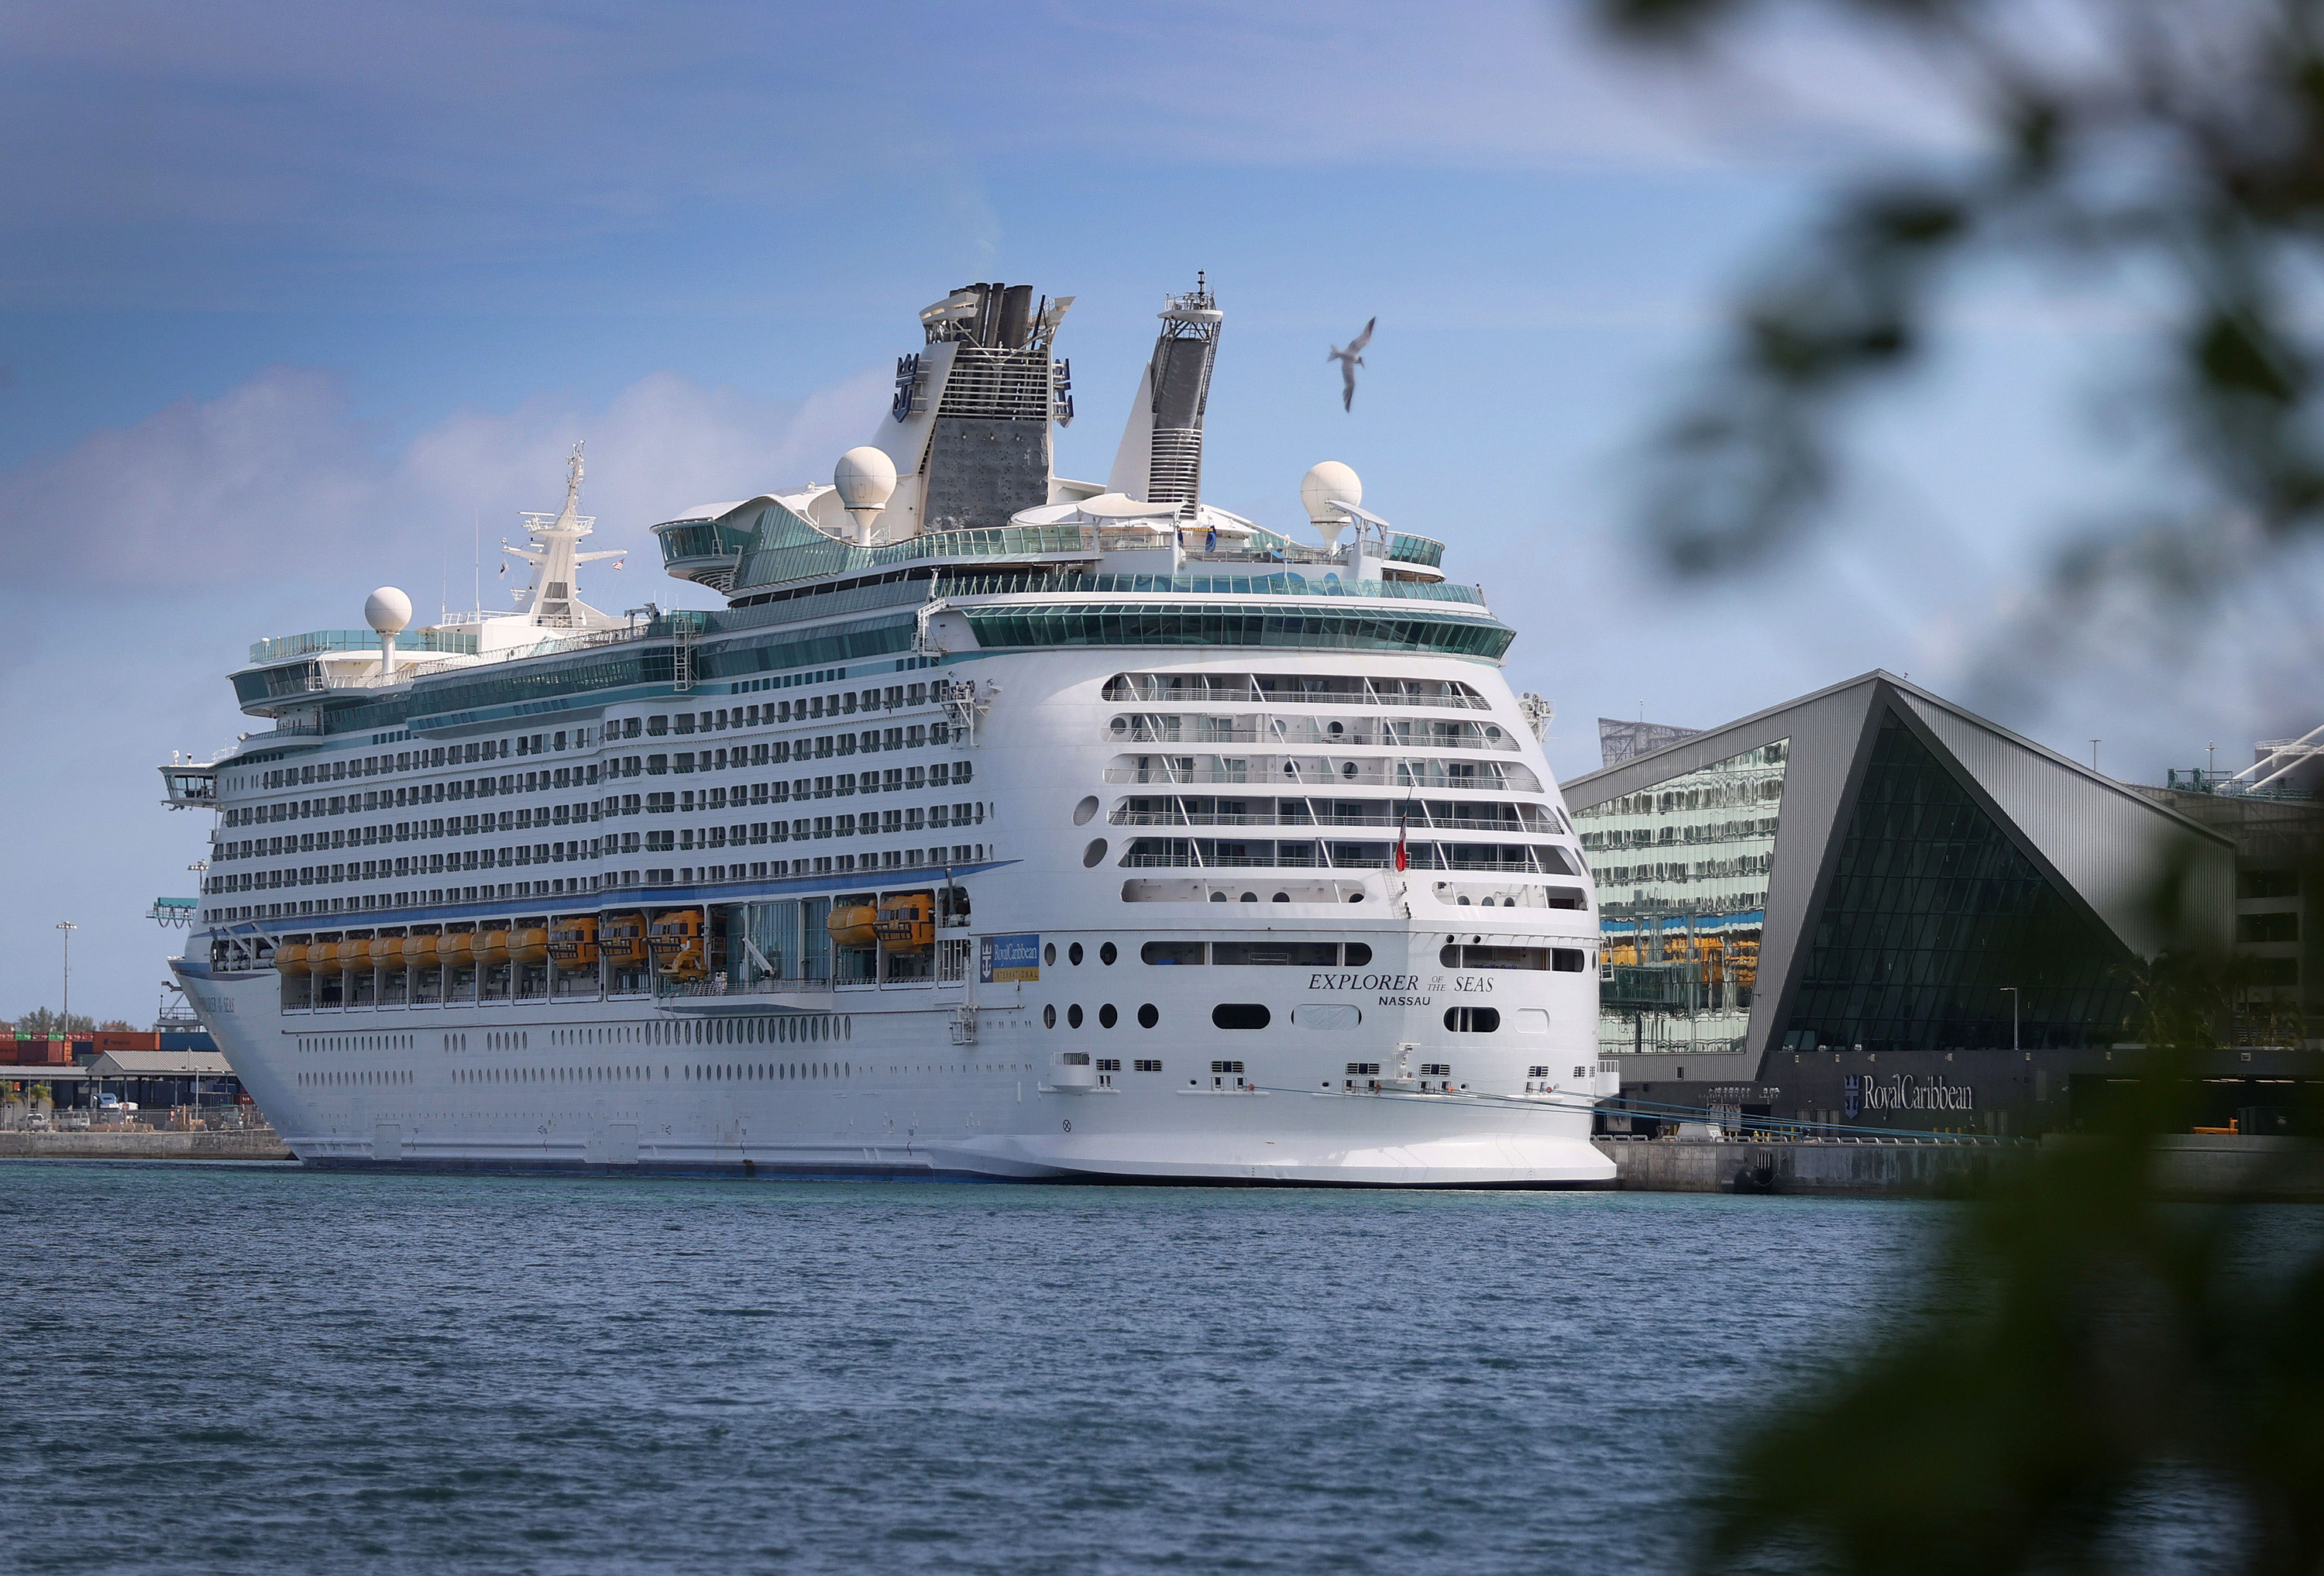 Royal Caribbean's Explorer of the Seas cruise ship is docked at PortMiami in Florida on March 2.